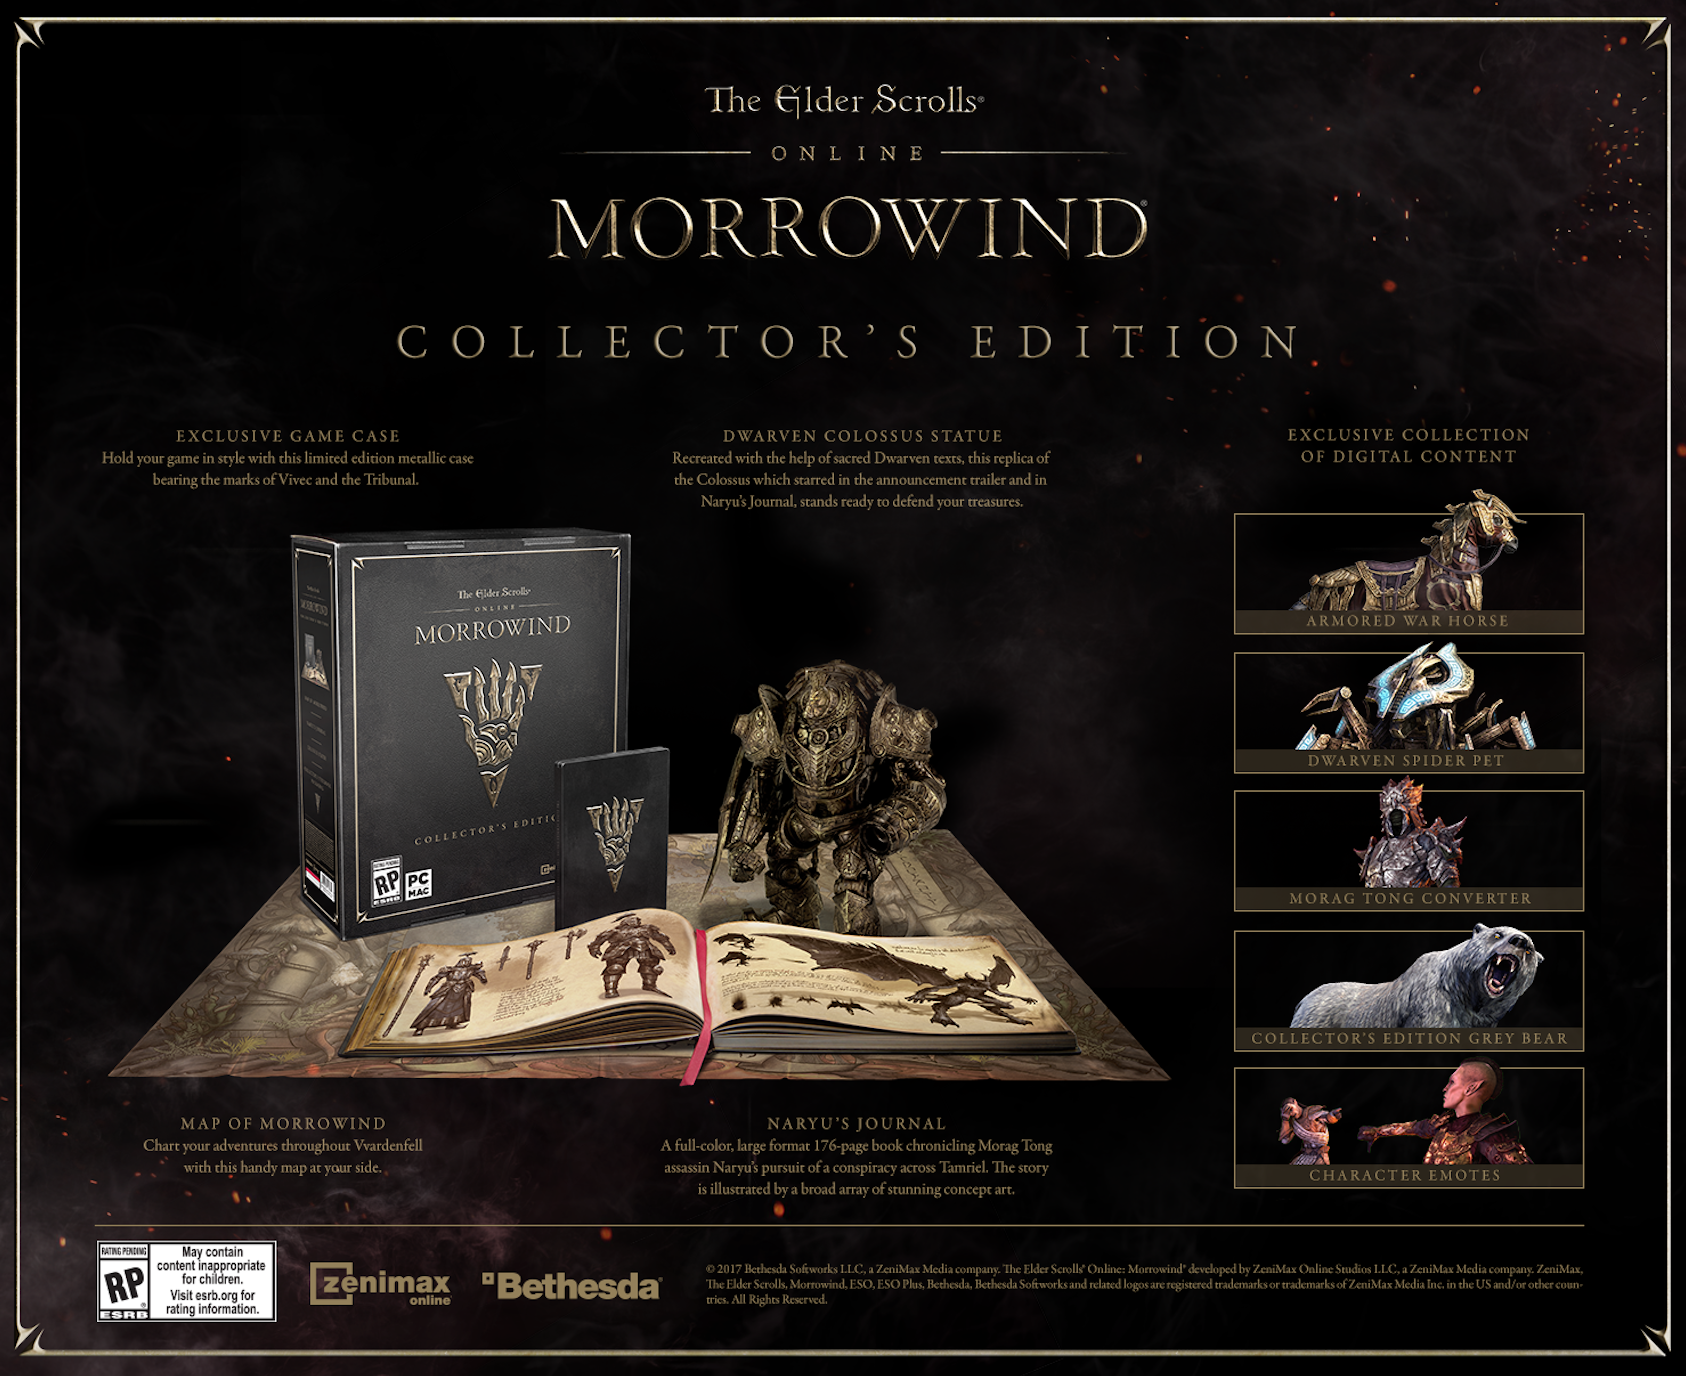 Morrowind Expansion Announced for The Elder Scrolls Online